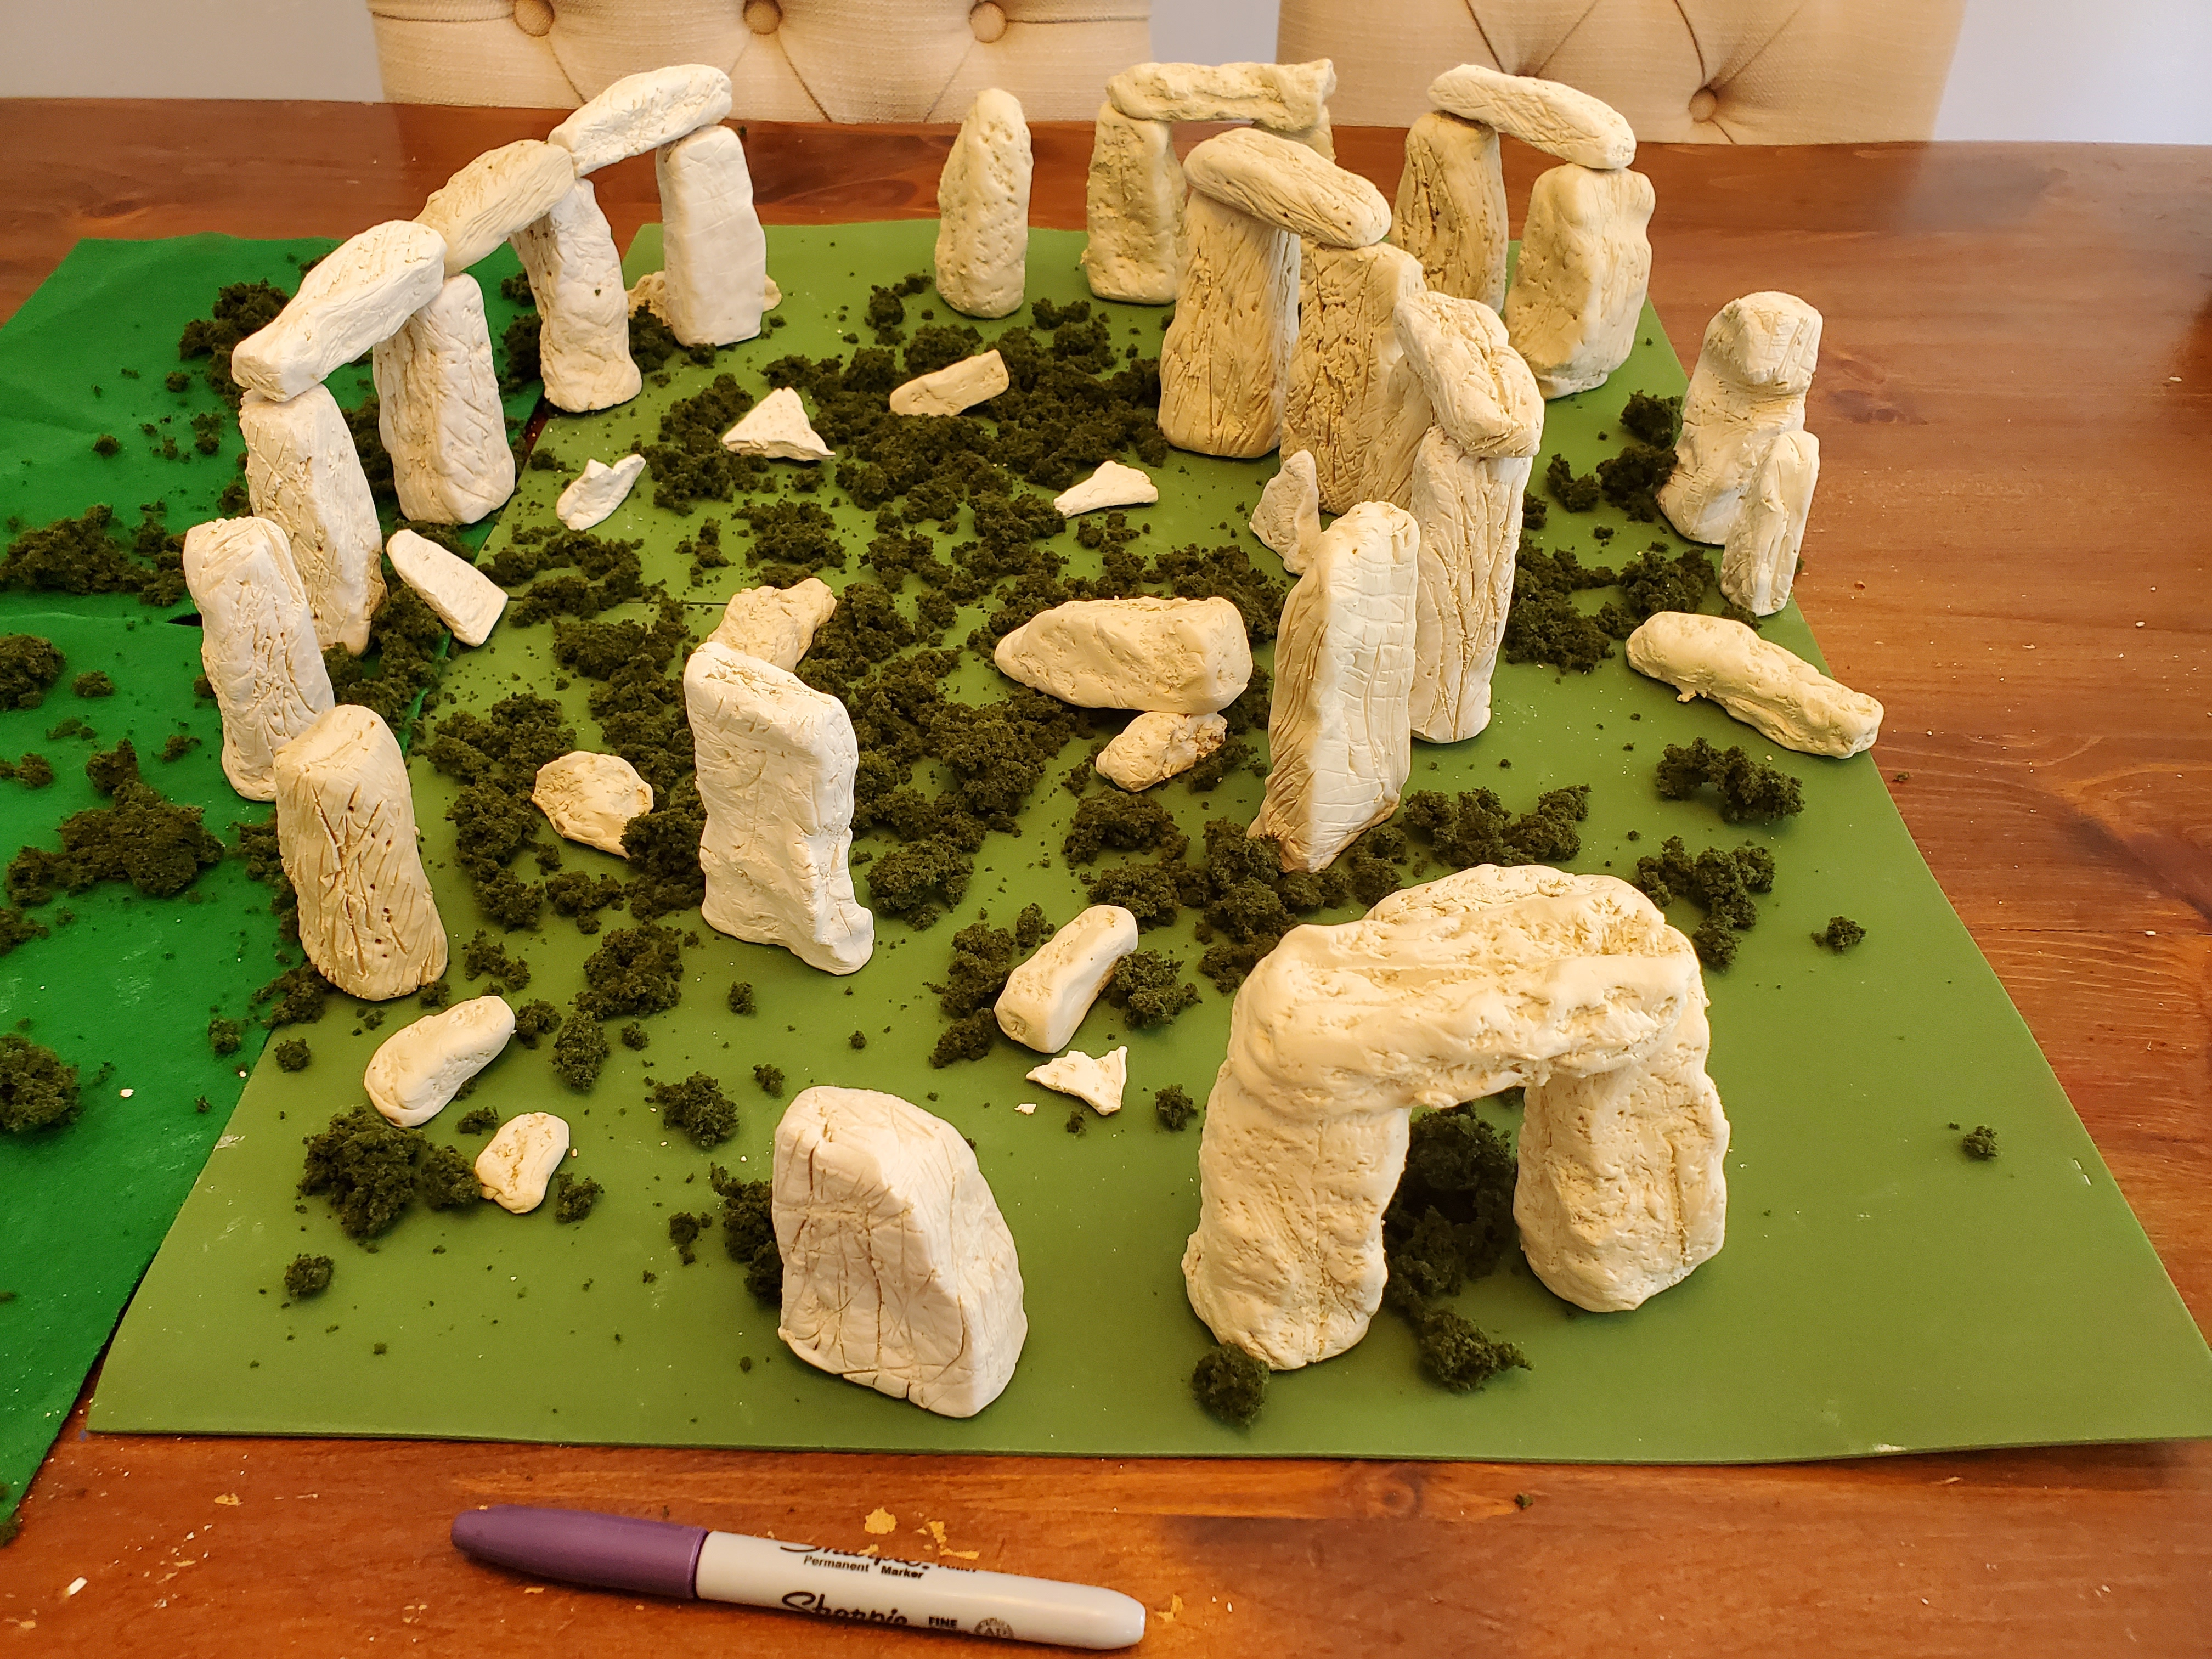 Ryker (age 12) won the judge's pick in the youth category for Stonehenge.